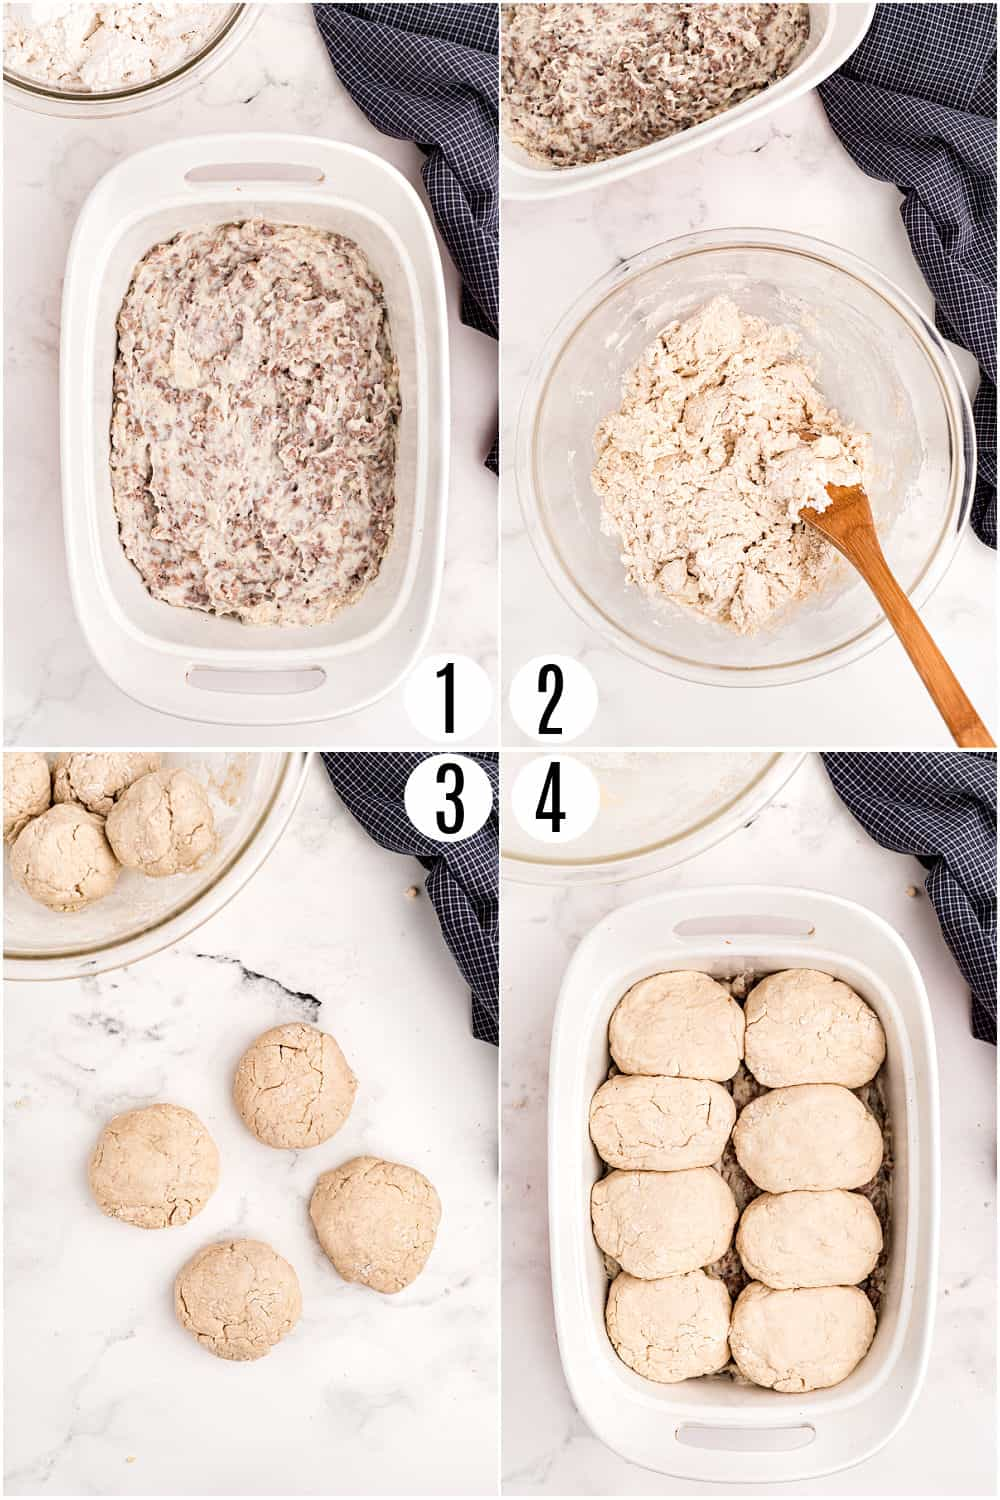 Step by step photos showing how to make biscuits for sausage and gravy casserole.